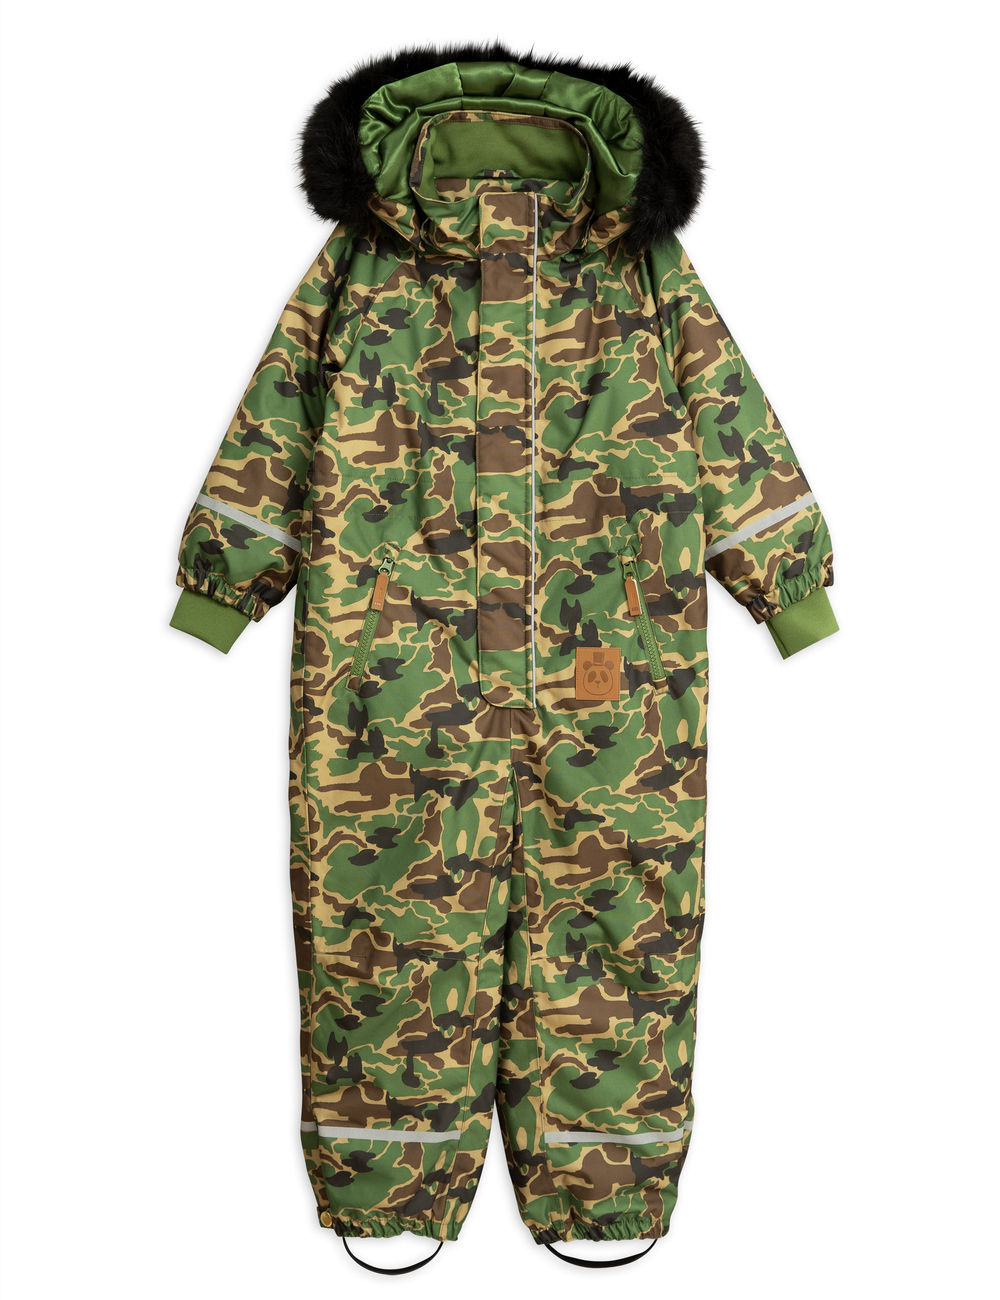 Kebnekaise Camo Overall